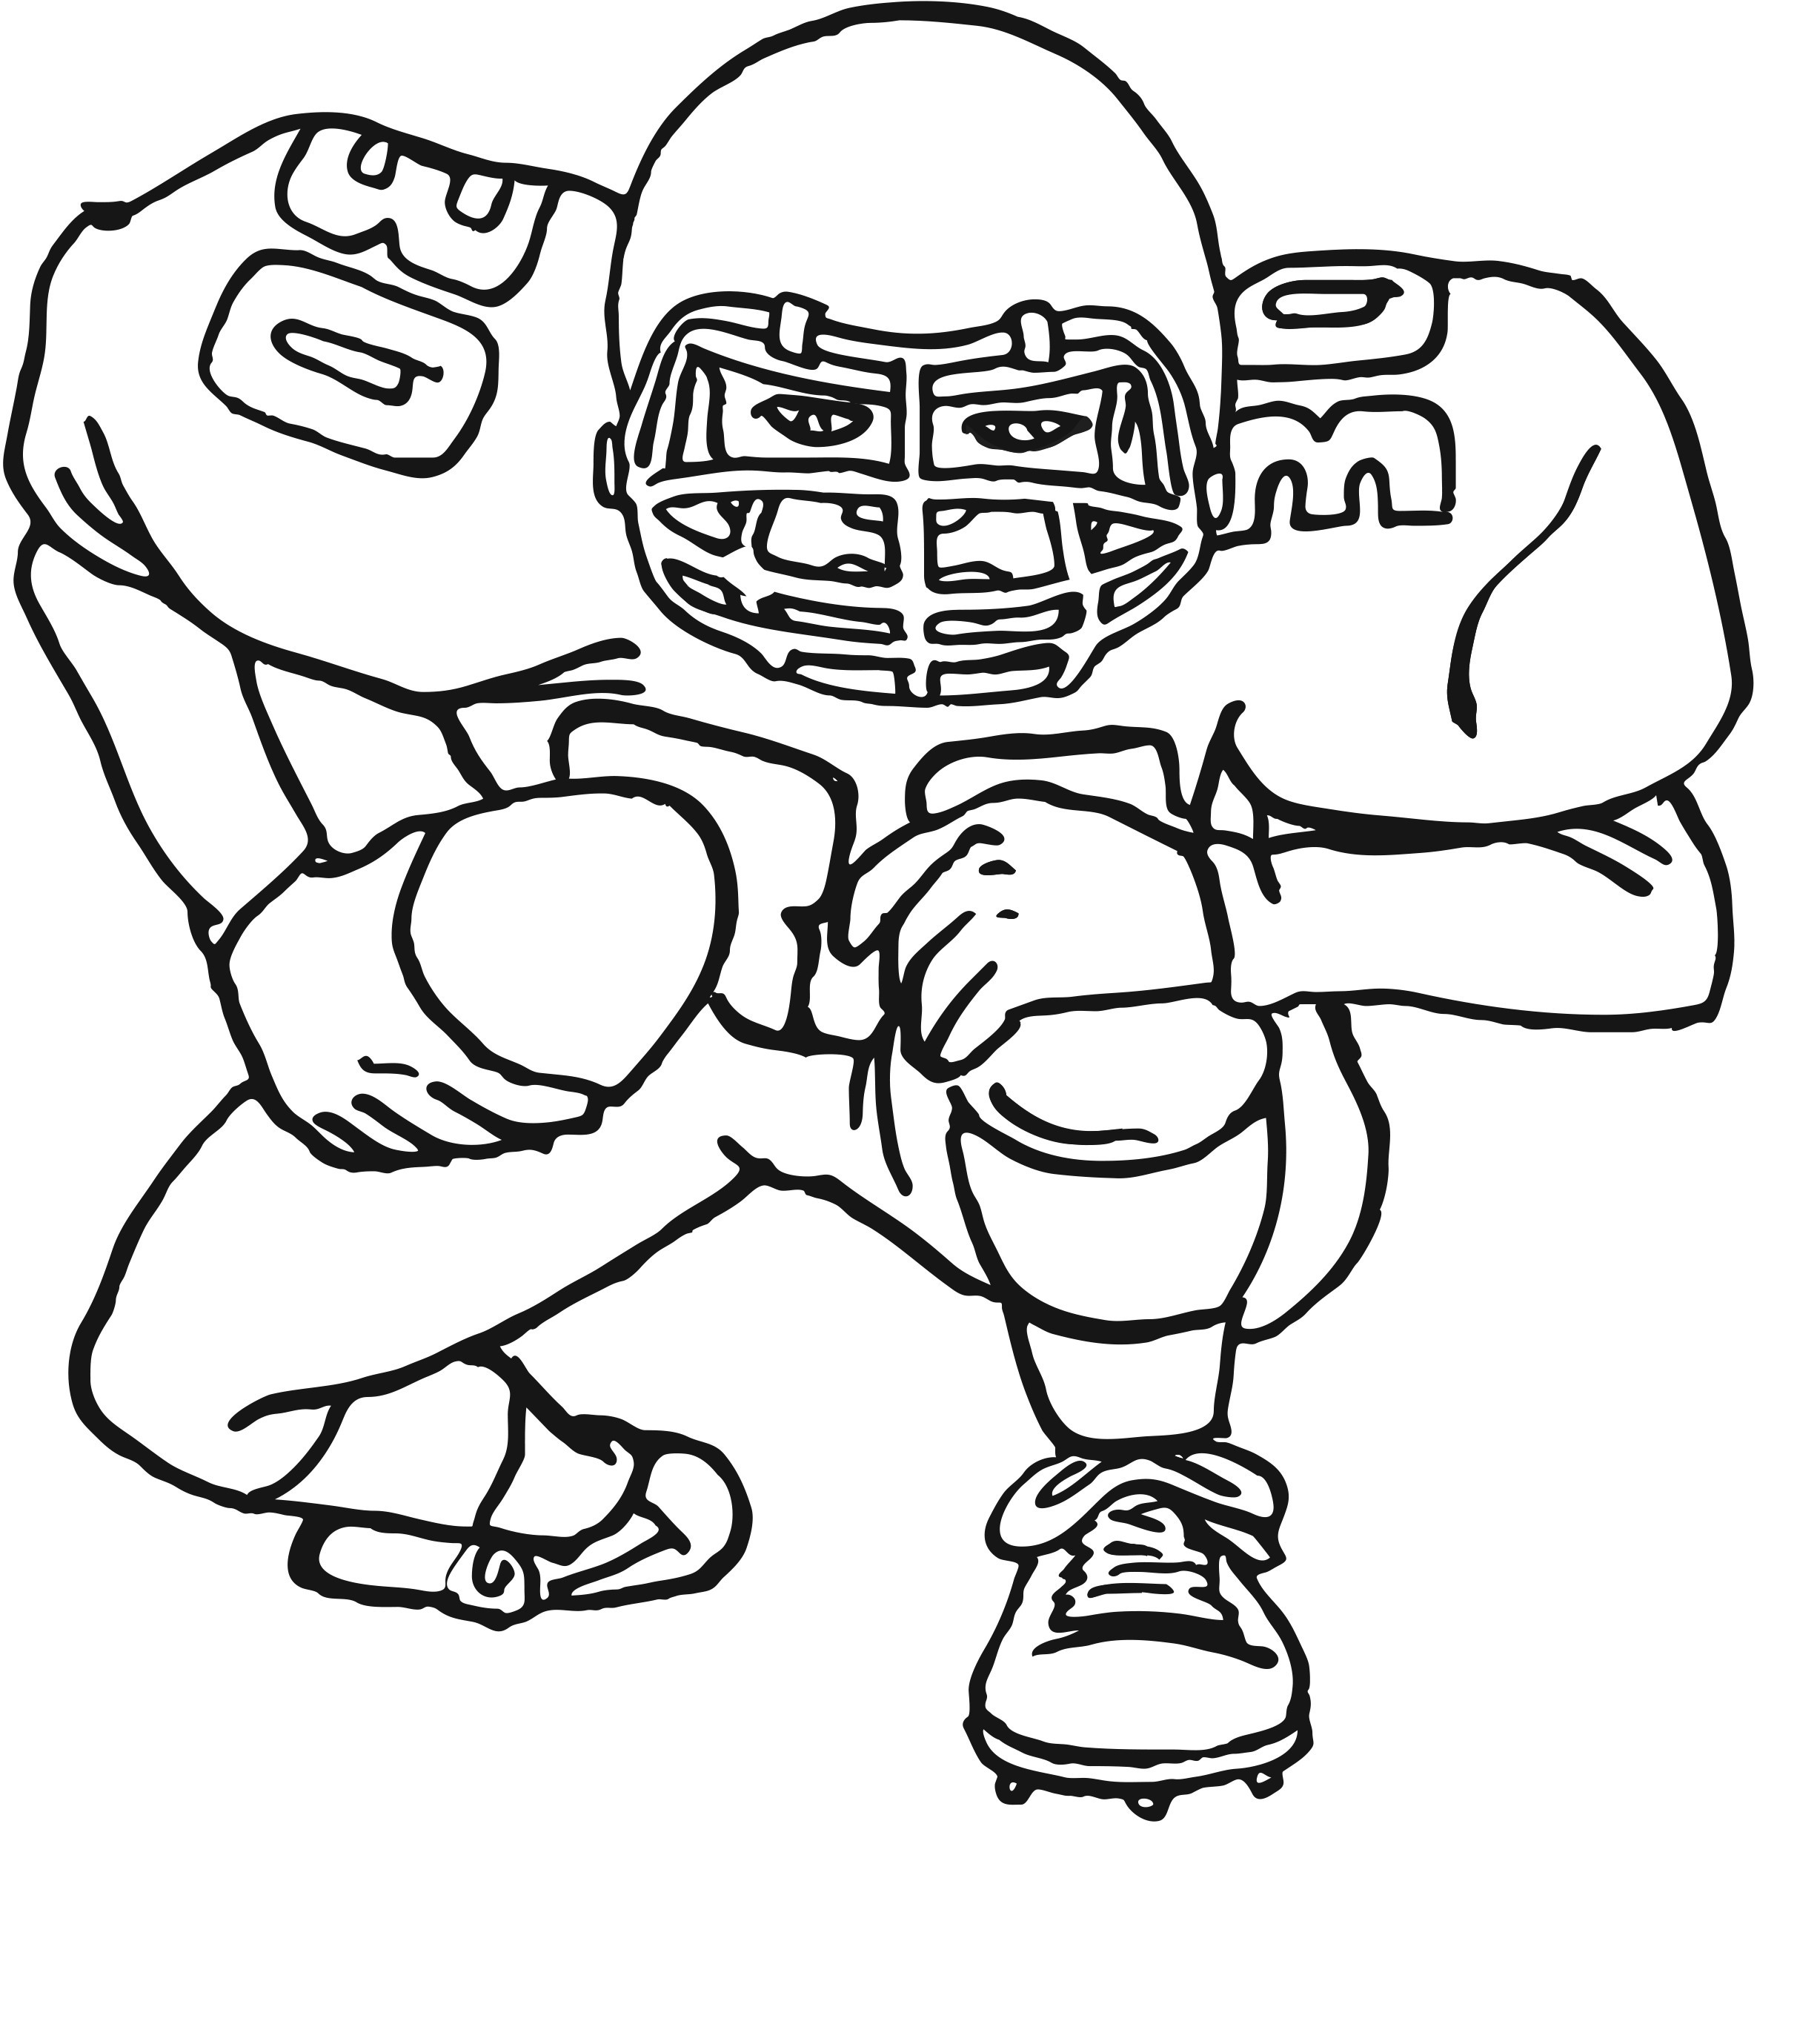 coloring pages of football teams fired up soccer coloring free soccer fifa futbol football coloring pages teams of